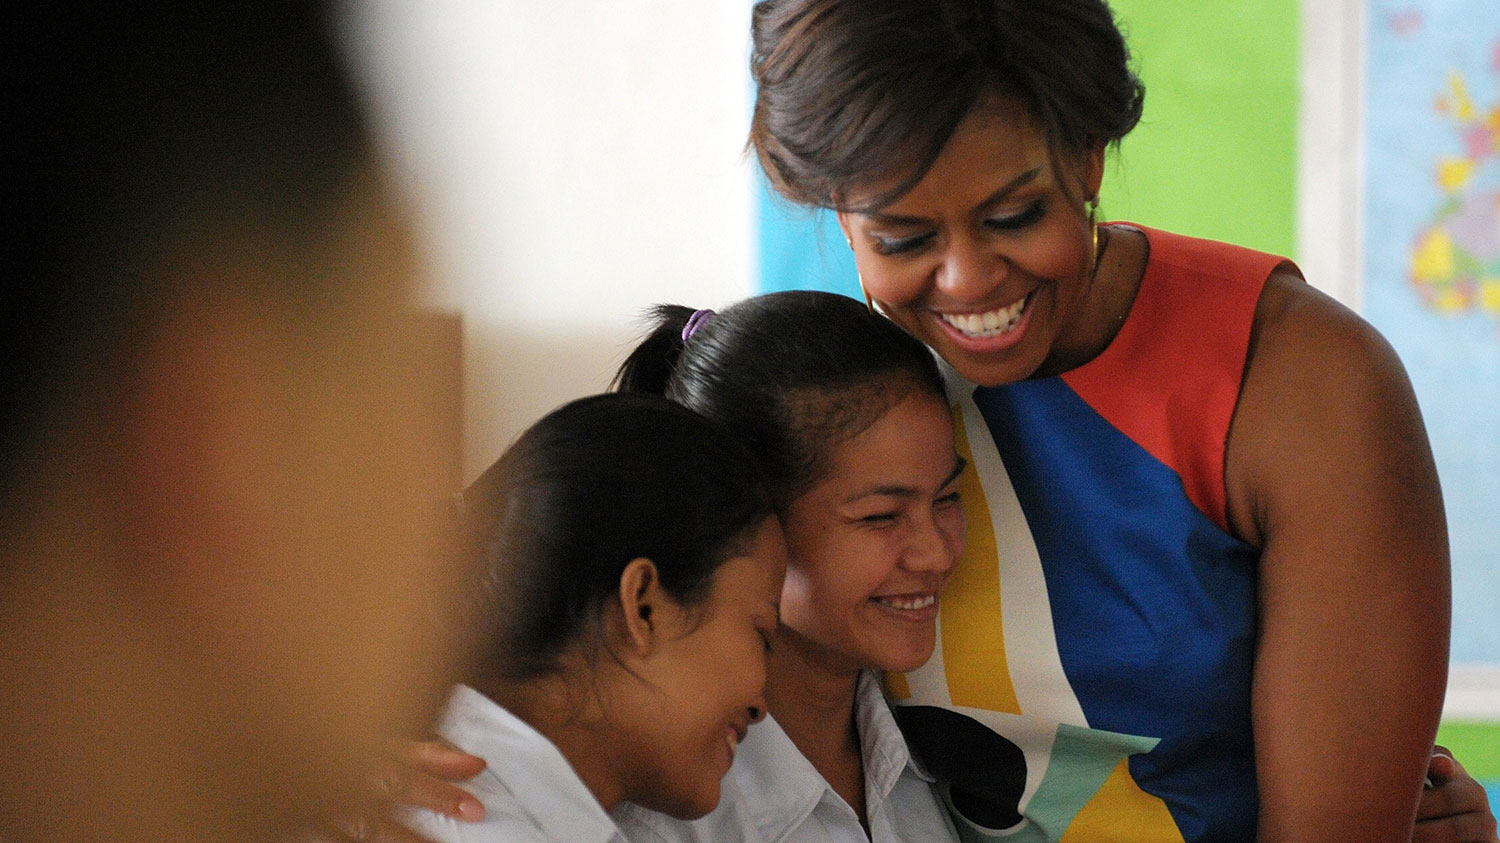 Obama greets students in Cambodia